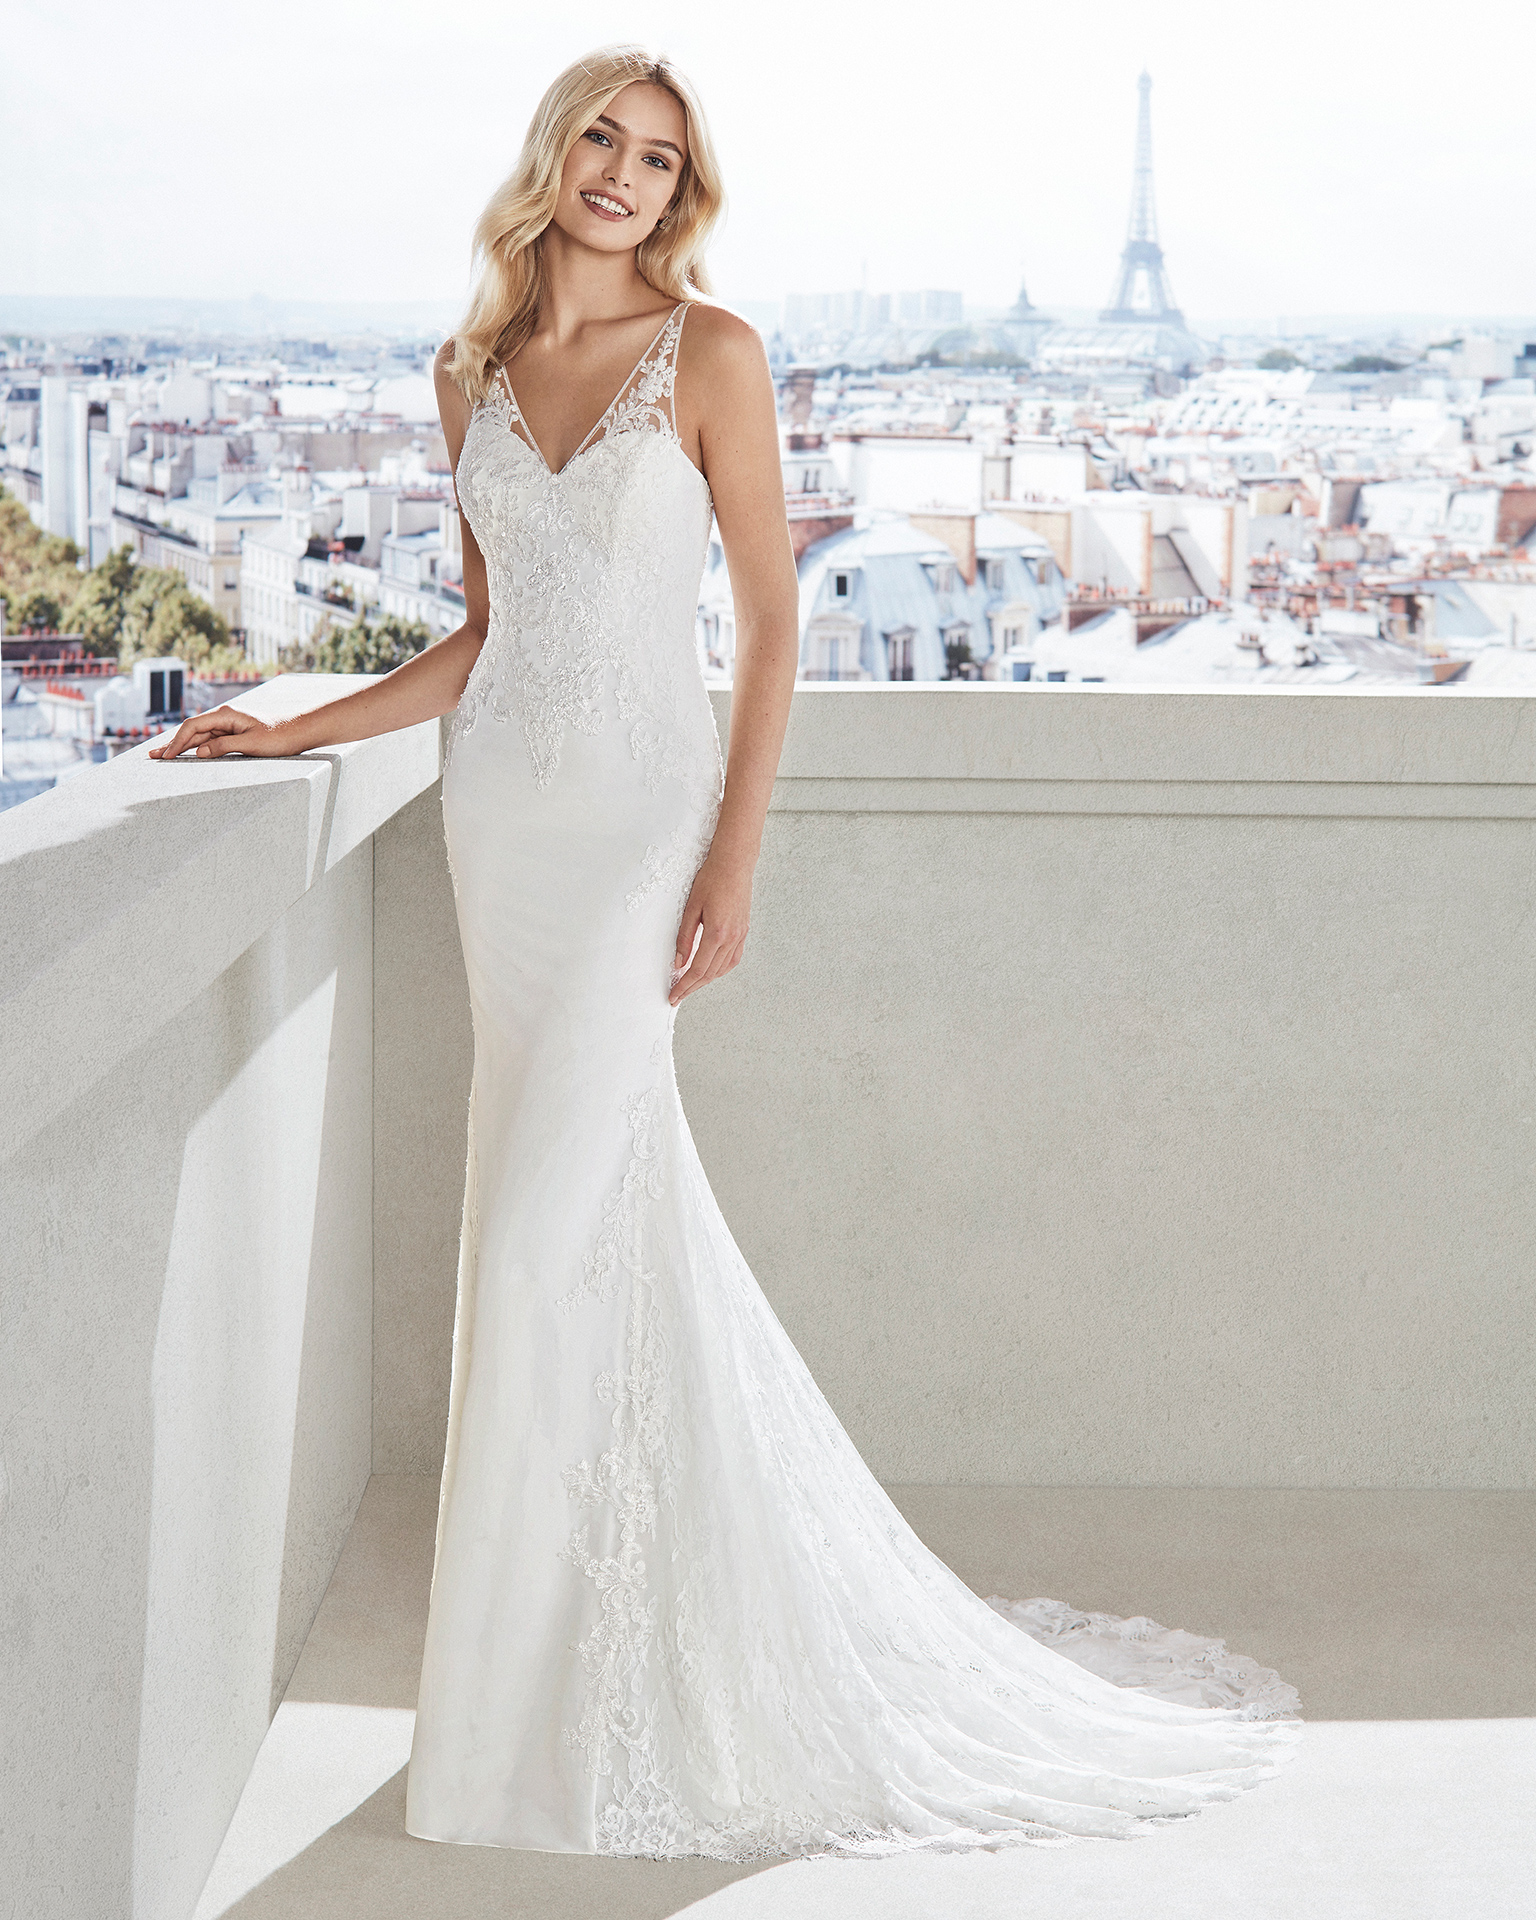 Sheath-style wedding dress in crepe. Beaded lace bodice, V-neckline and train edged with lace. Available in natural. 2019  Collection.